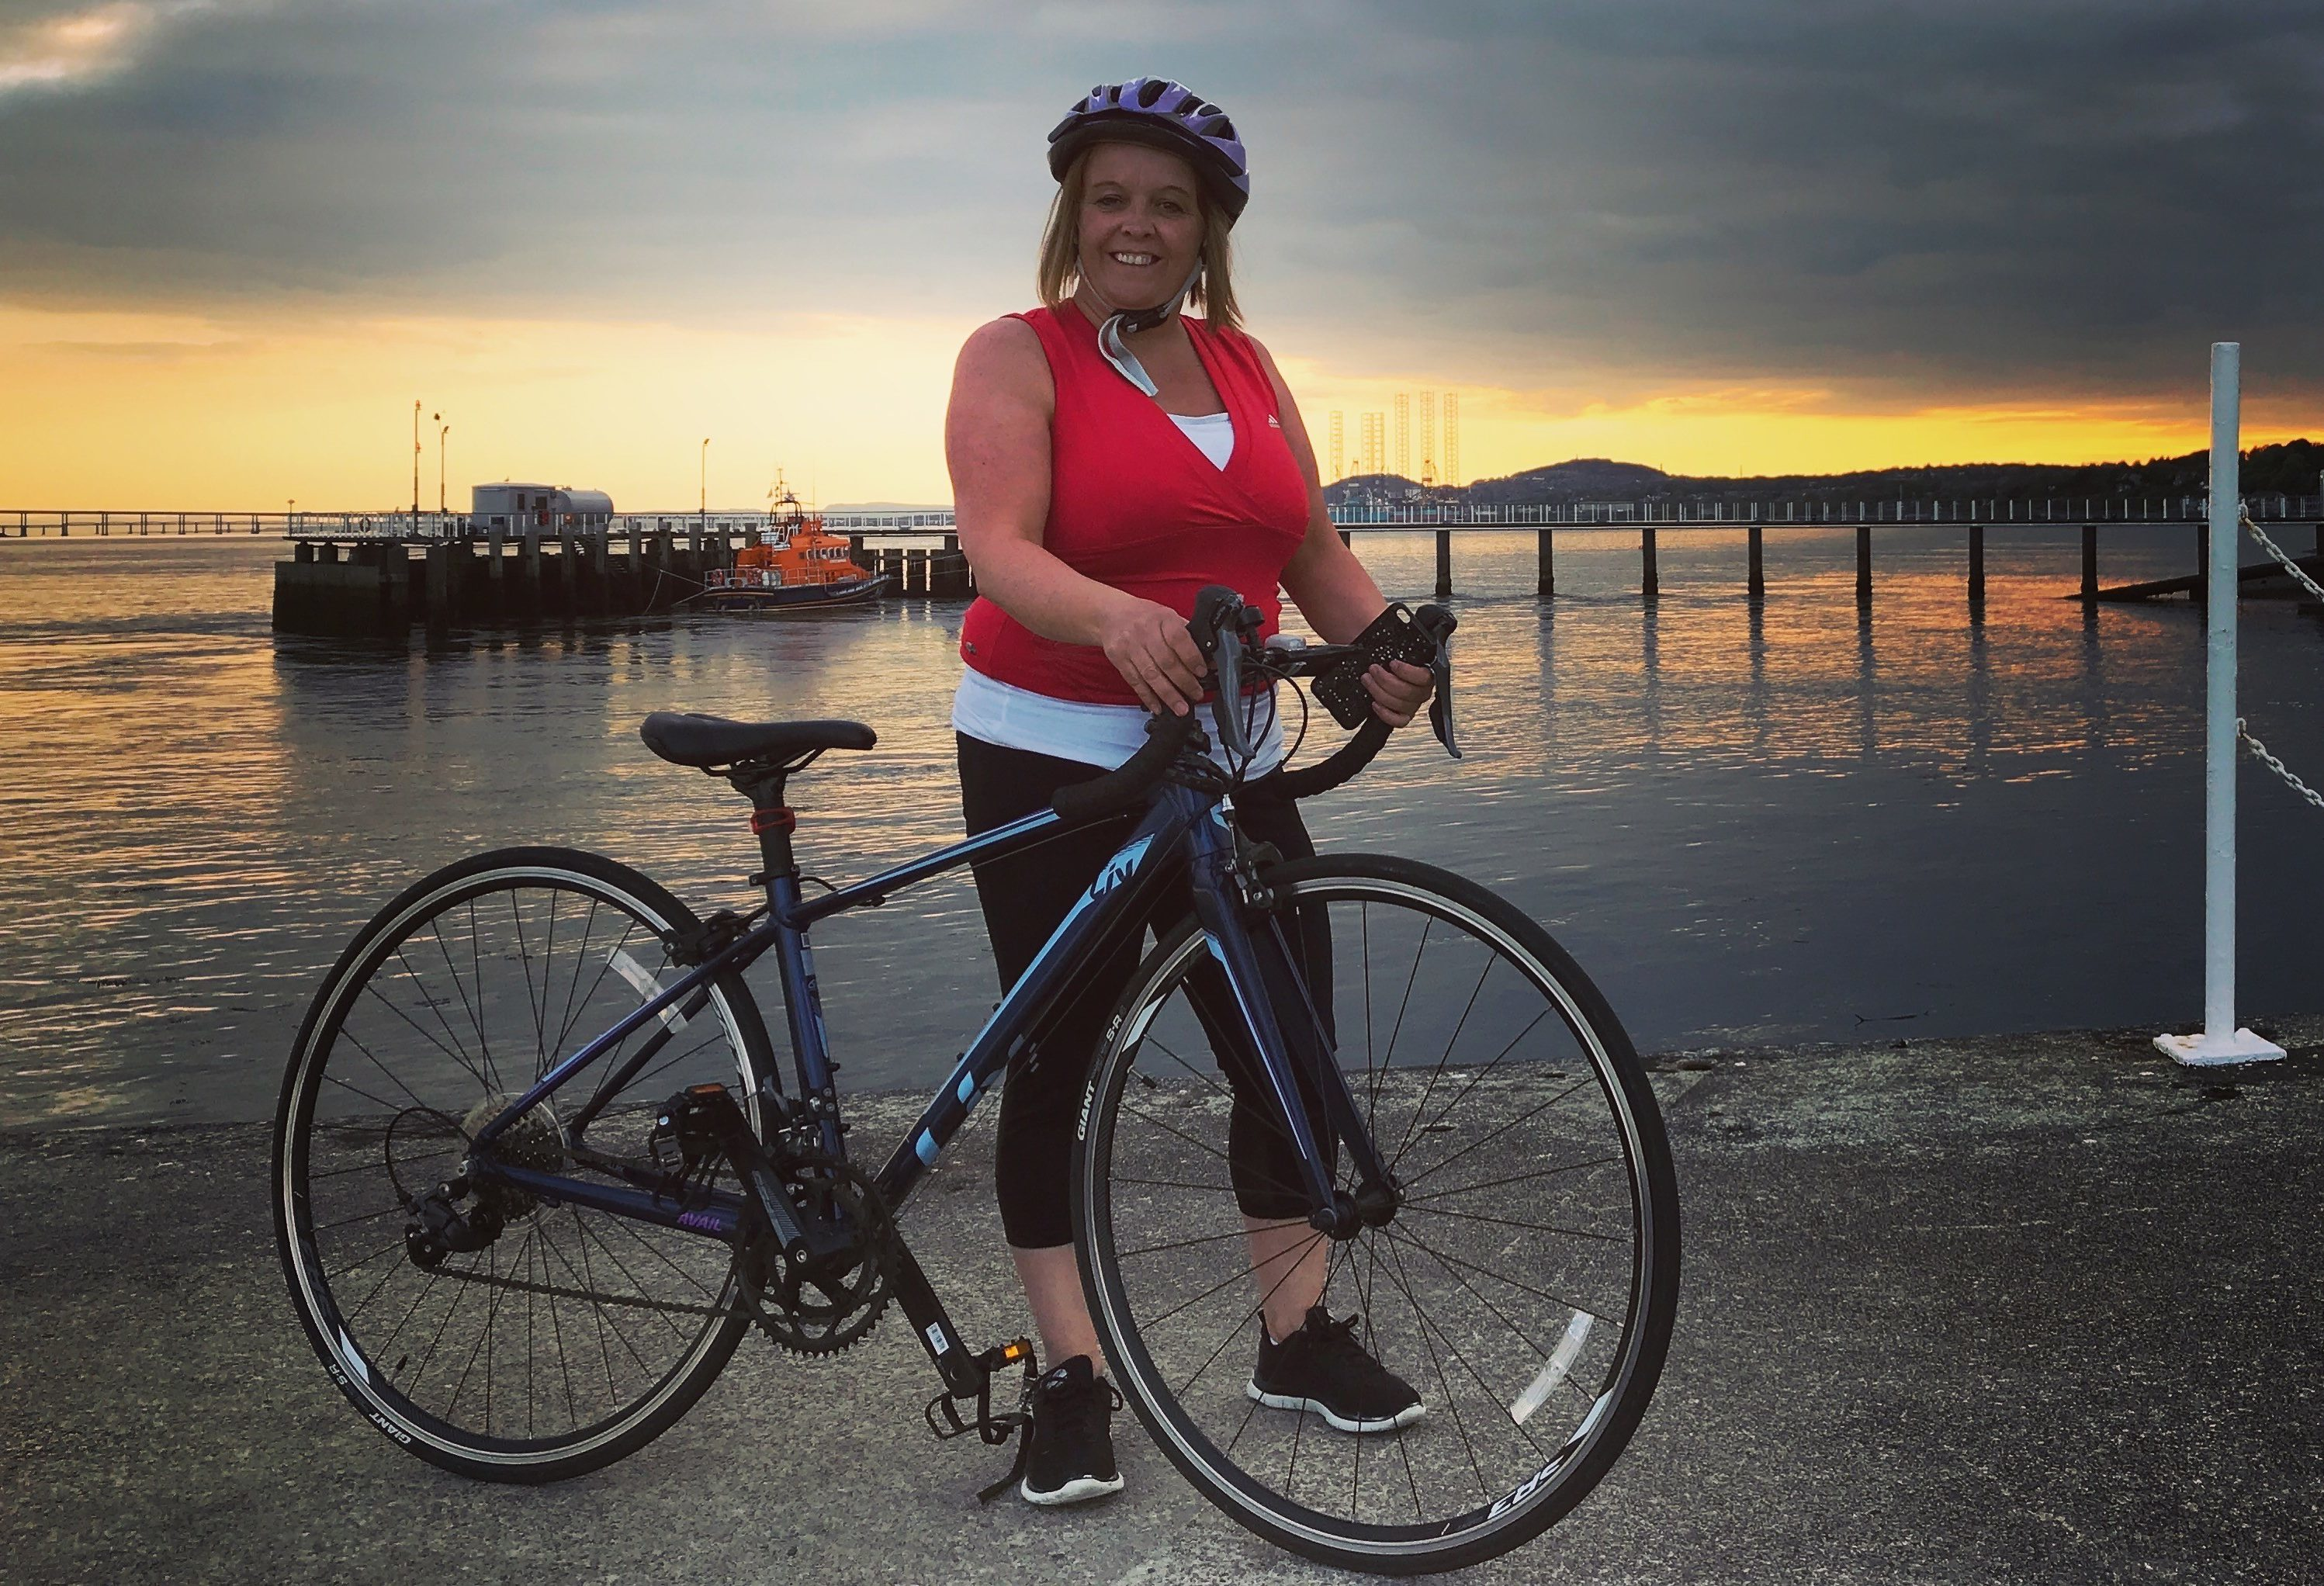 Jacqui in training in Broughty Ferry during the summer.